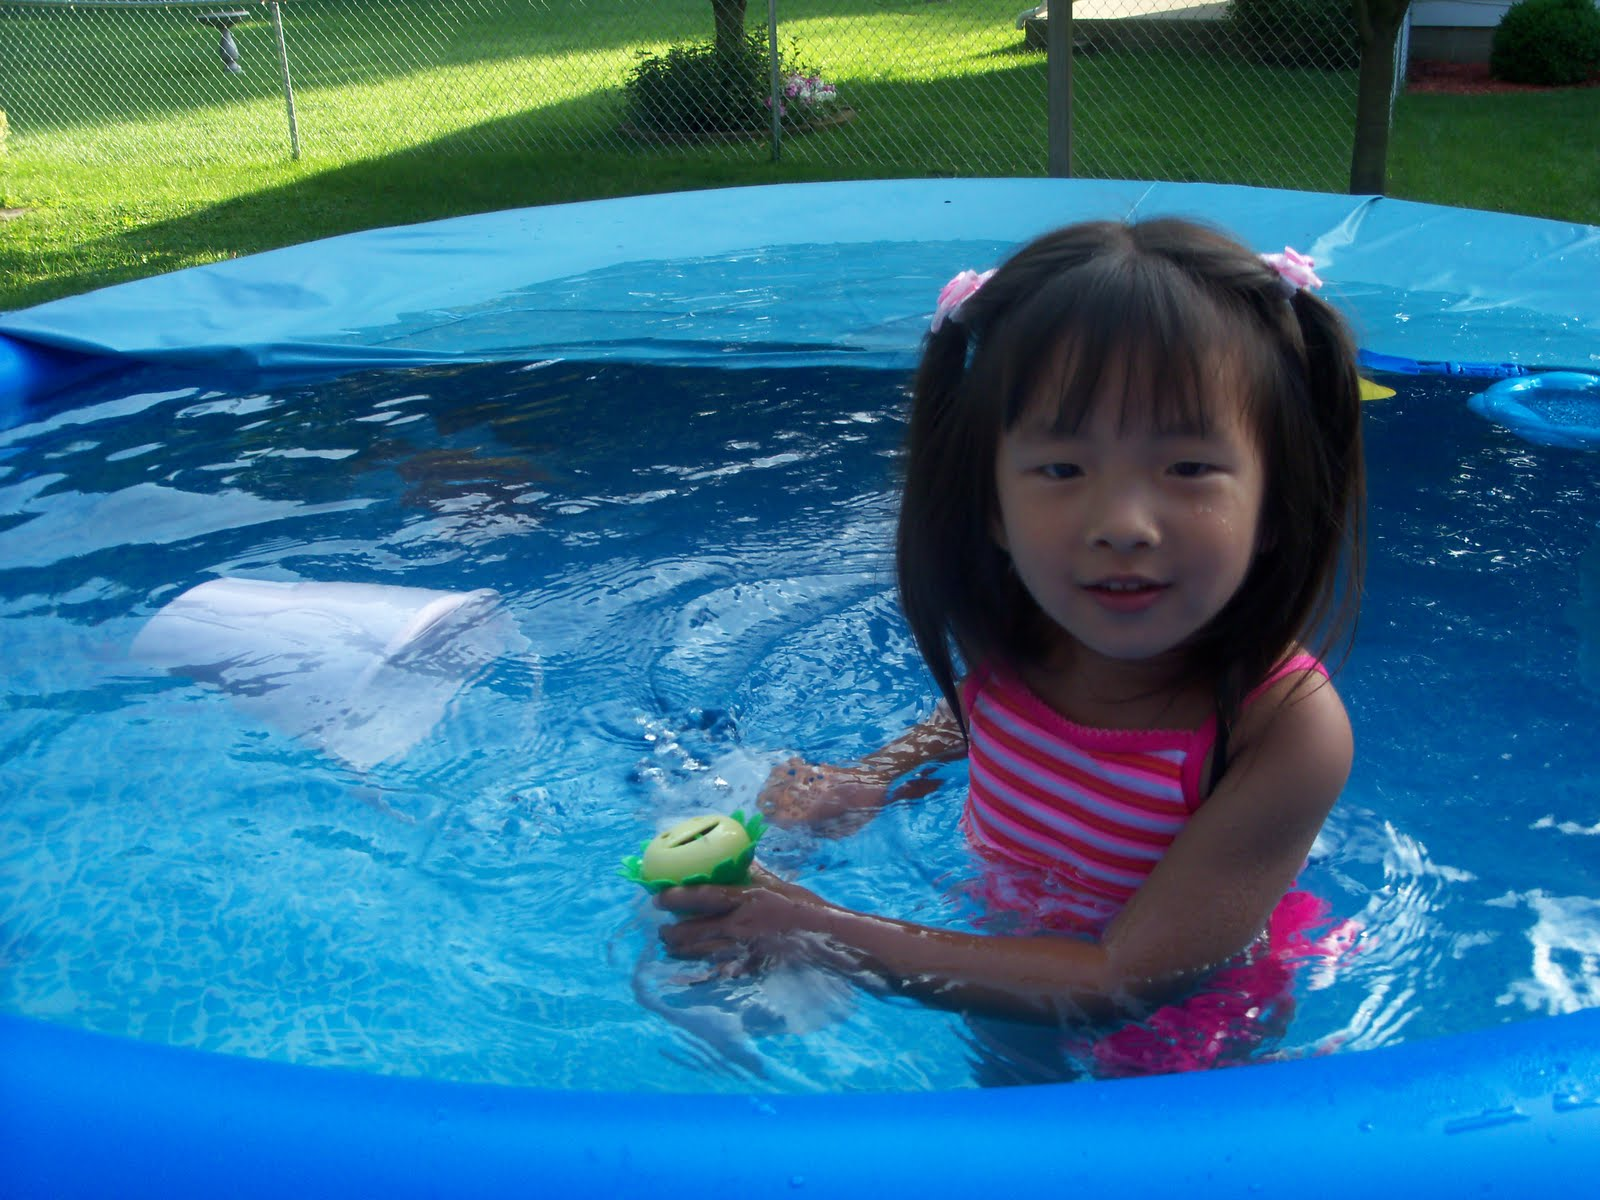 While she was playing in the pool I was near by pulling weeds. #0B4071